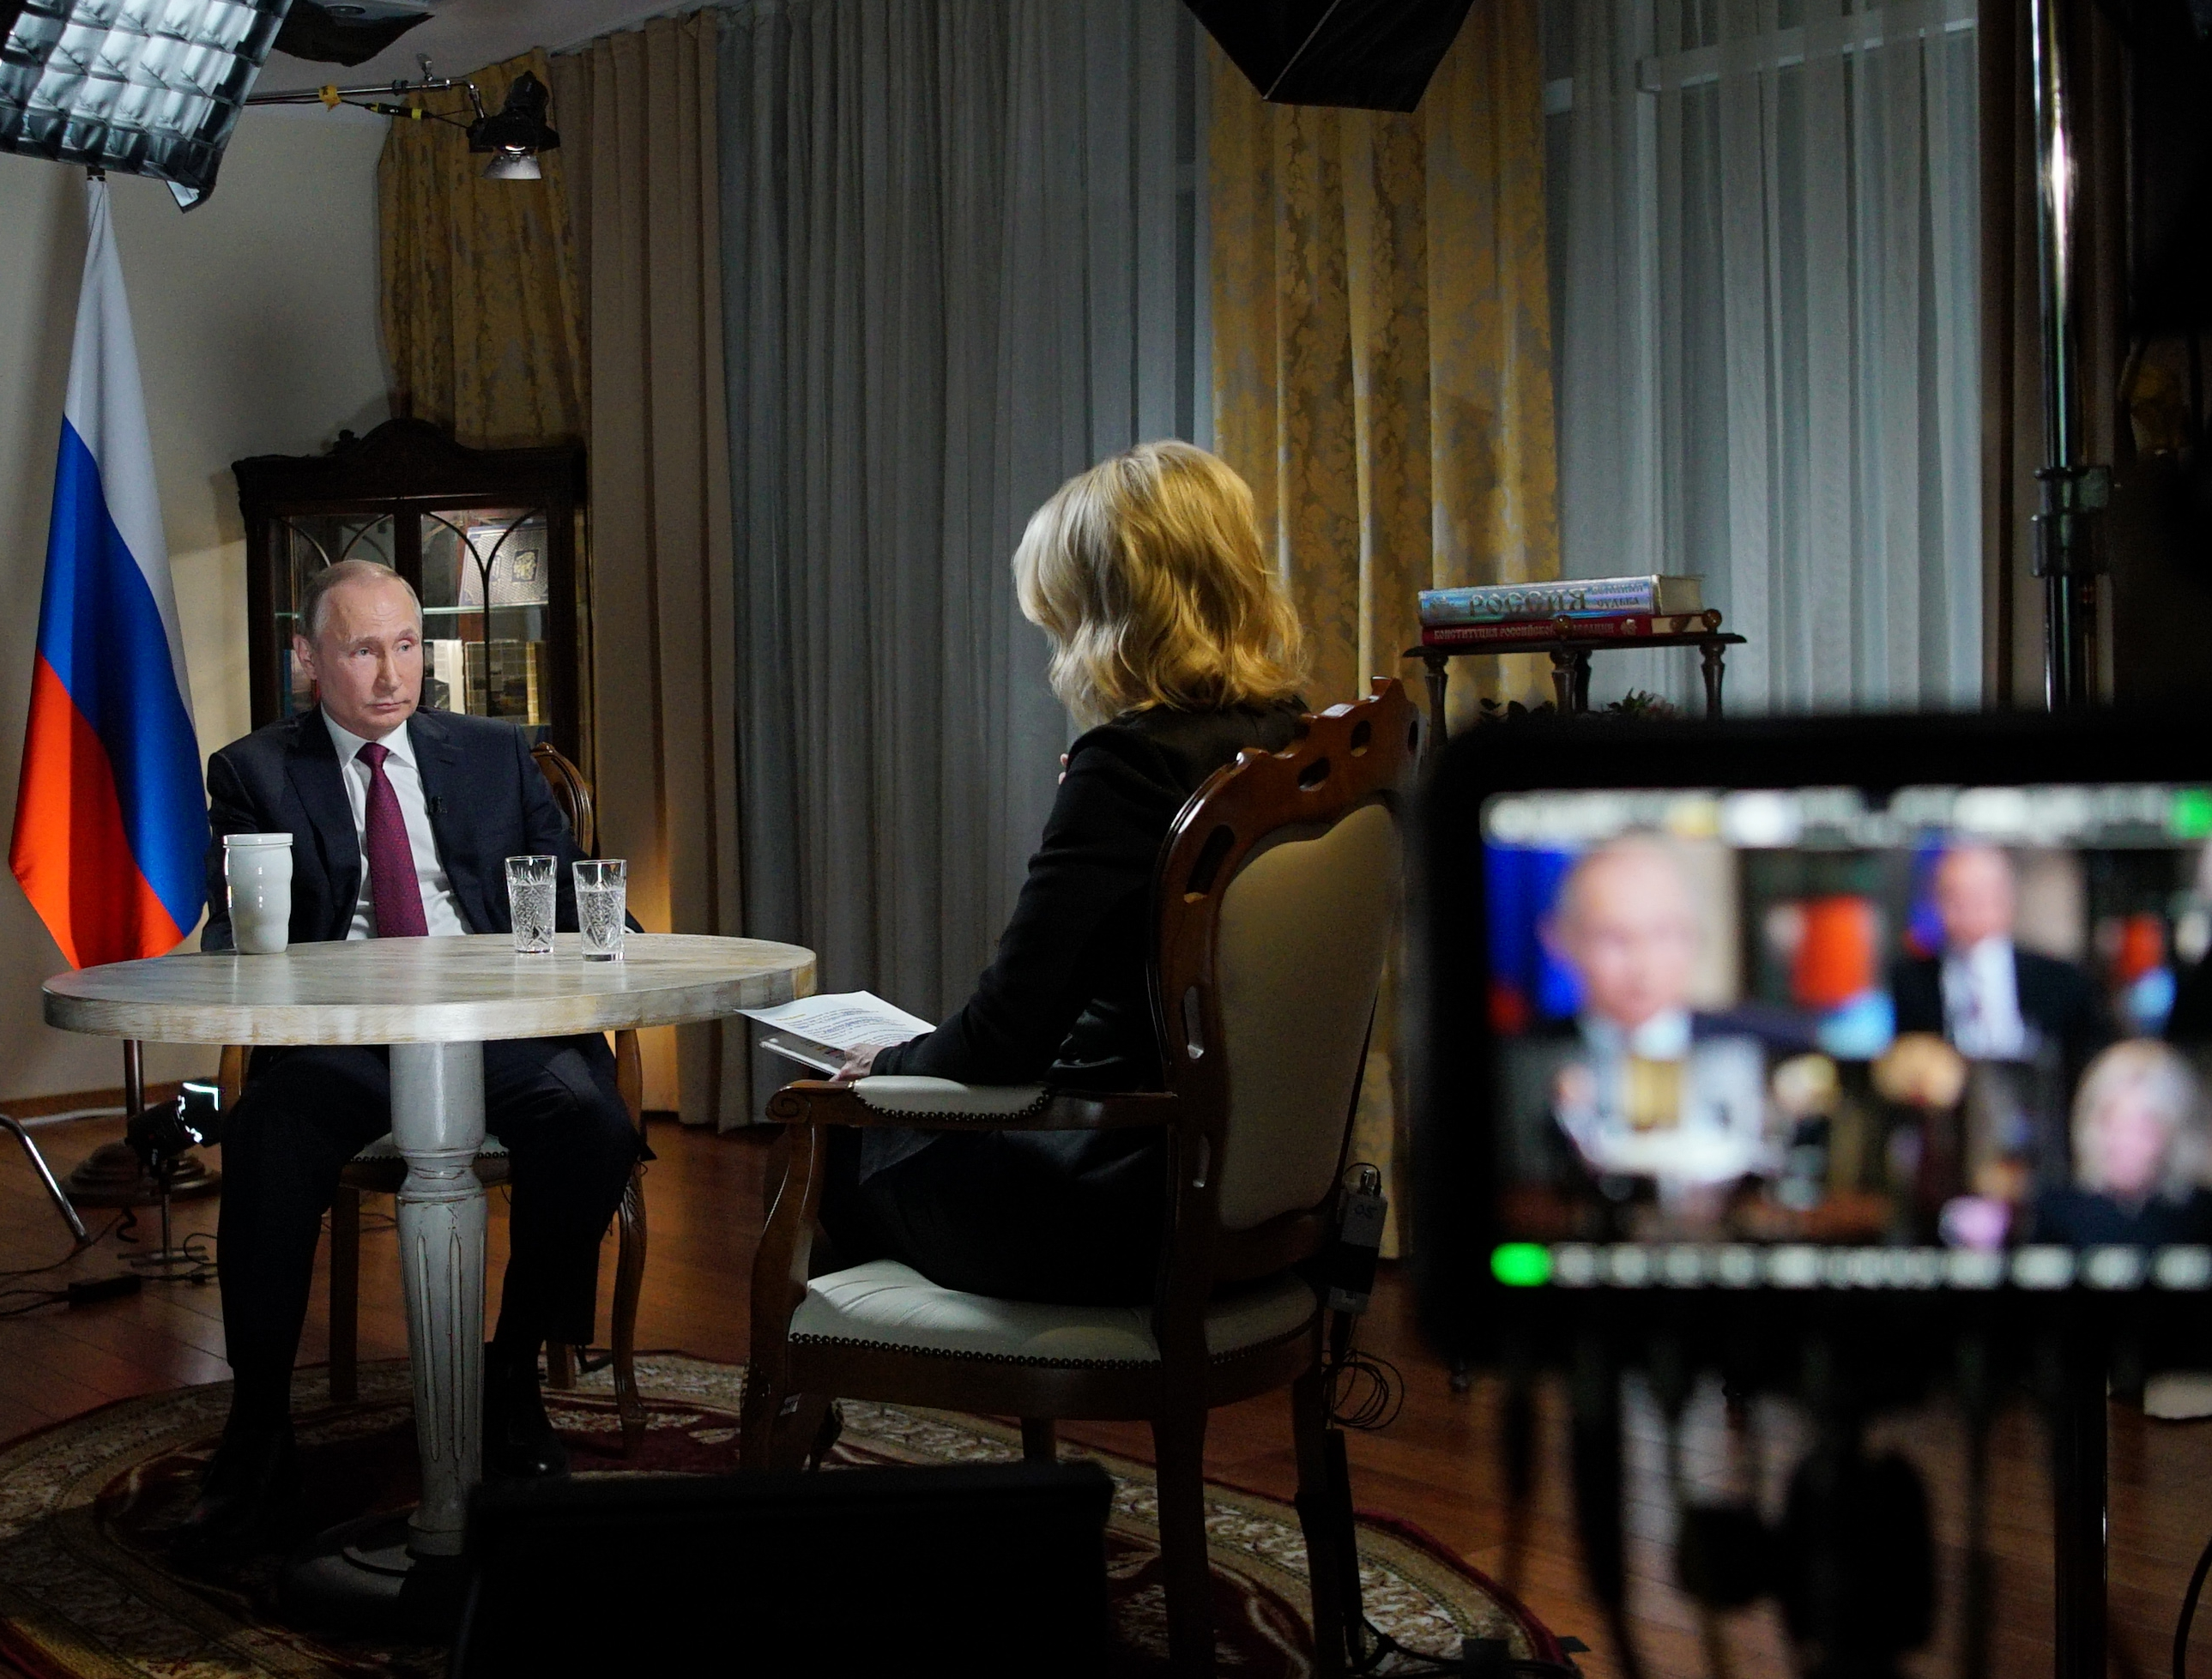 Russia's President Vladimir Putin (L) speaks with US NBC news network anchor Megyn Kelly at the Kremlin on March 1, 2018 in Moscow. (ALEXEI DRUZHININ/AFP/Getty Images)